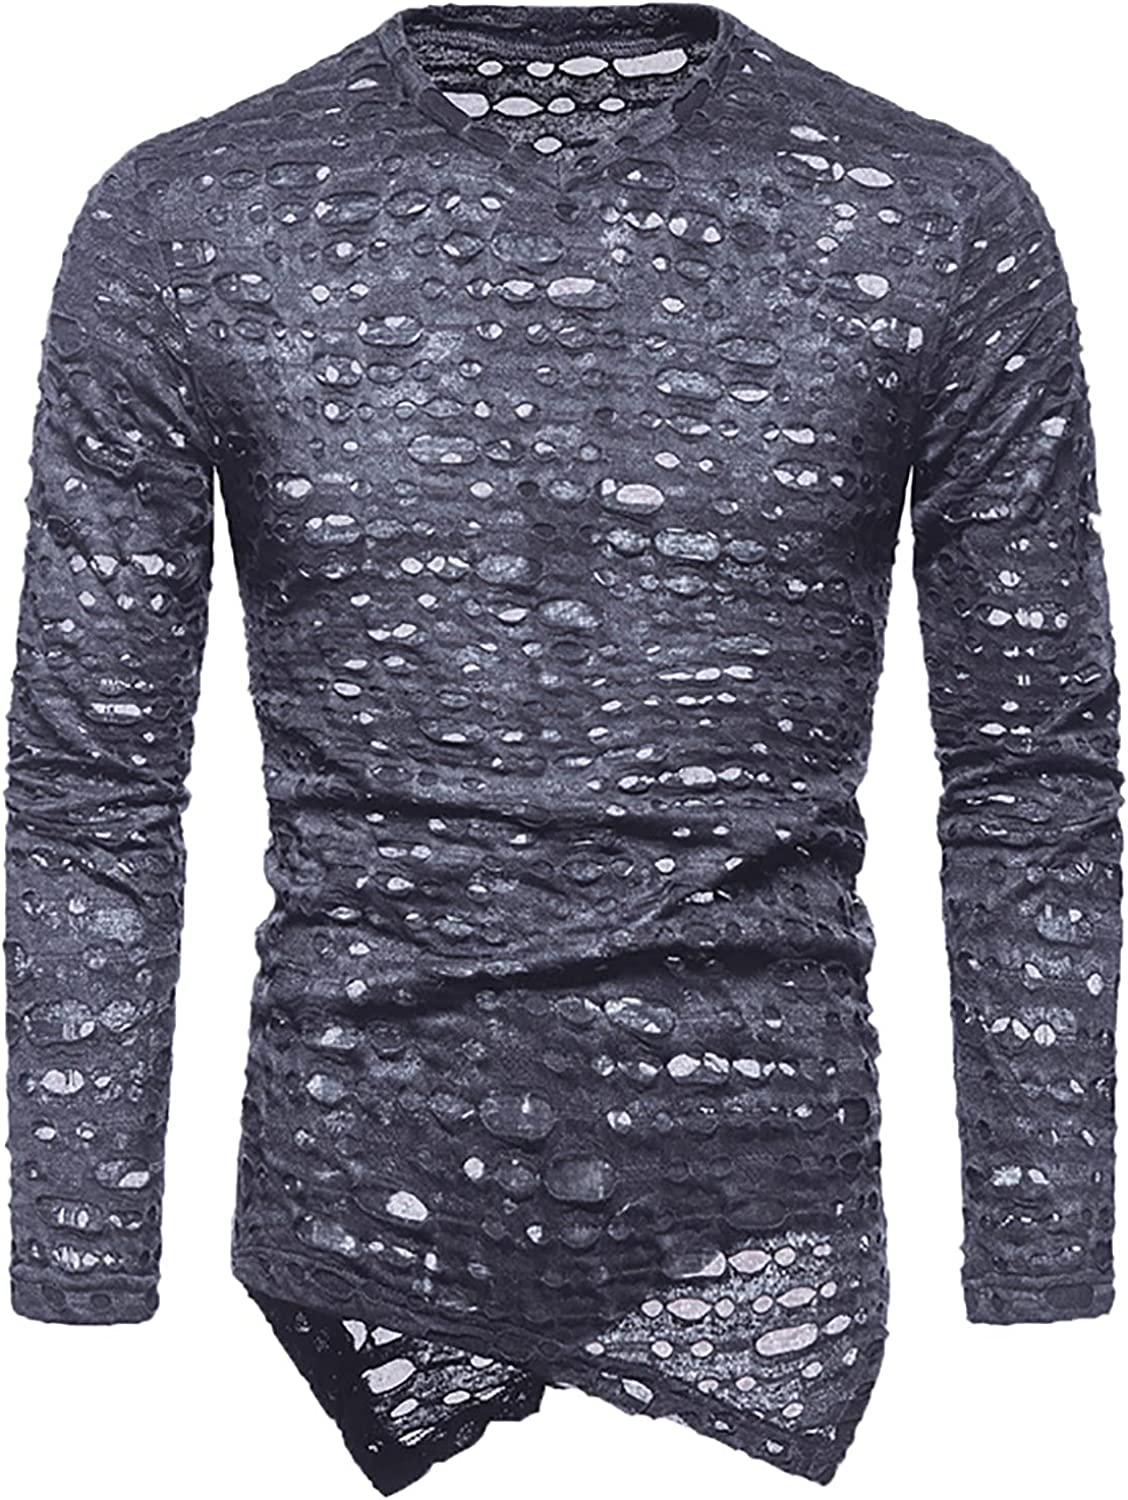 Mens Shirts Long Sleeve V-neck Solid High material Challenge the lowest price of Japan ☆ Blouse Hollow Pull Hole Out